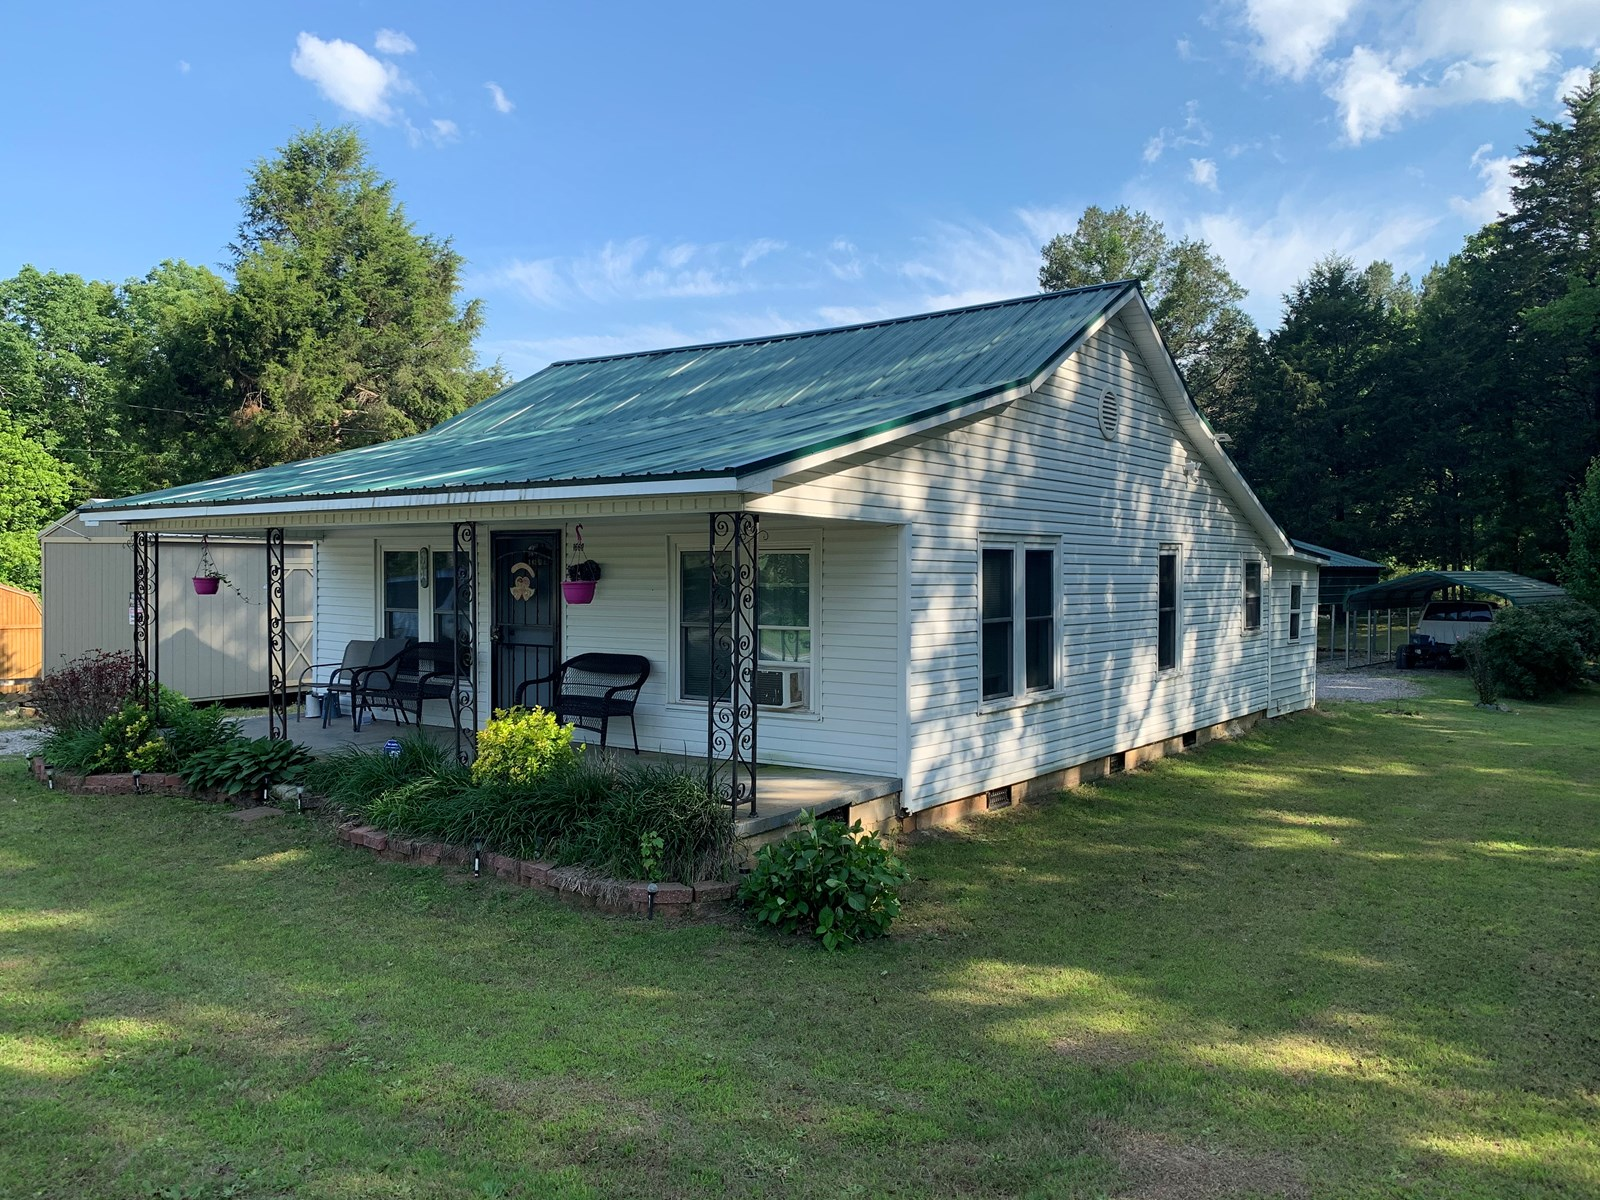 COUNTRY HOME FOR SALE IN TENNESSEE, SHOP, BARN, GUEST CABIN